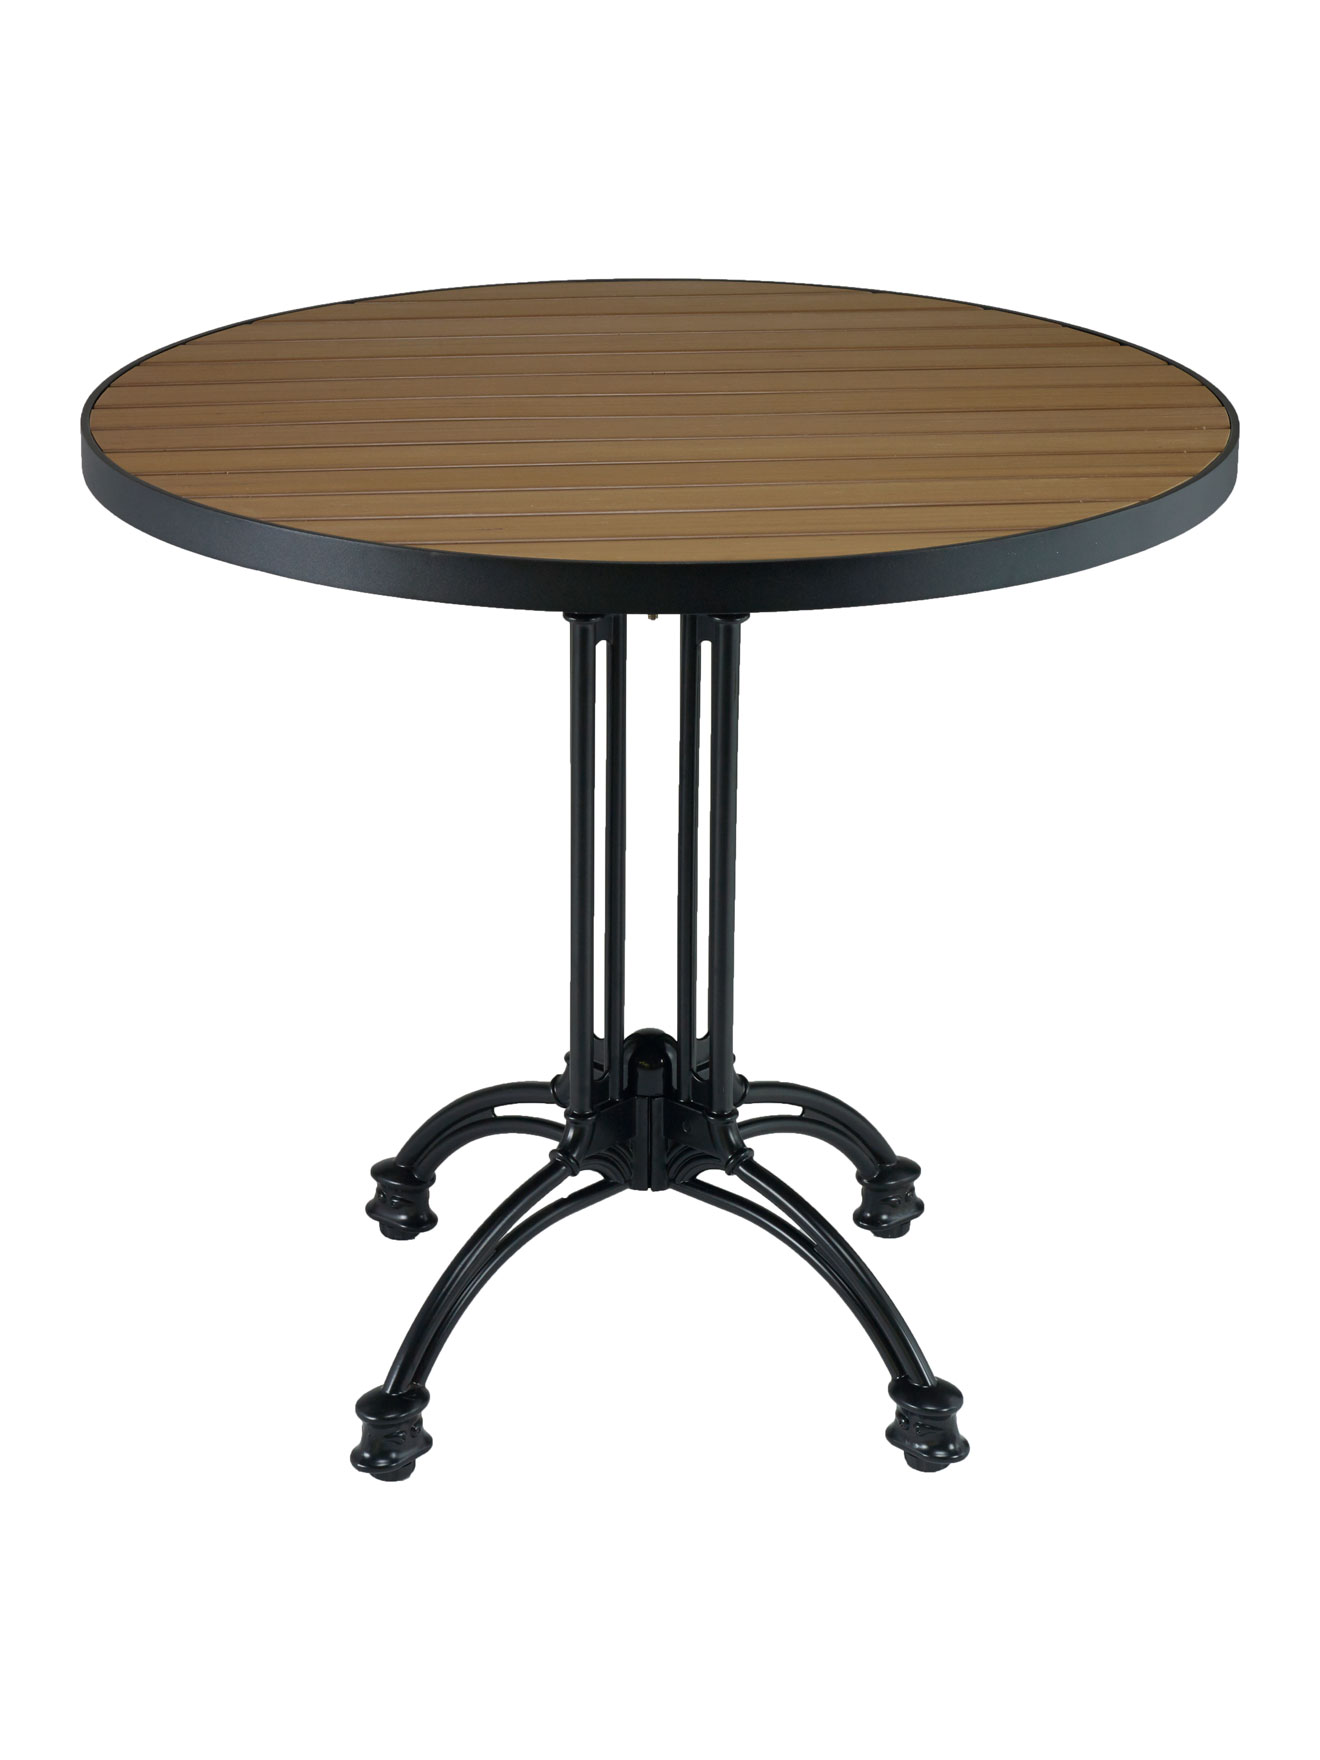 Faux Teak Metal Frame Round Table Top Picture 2